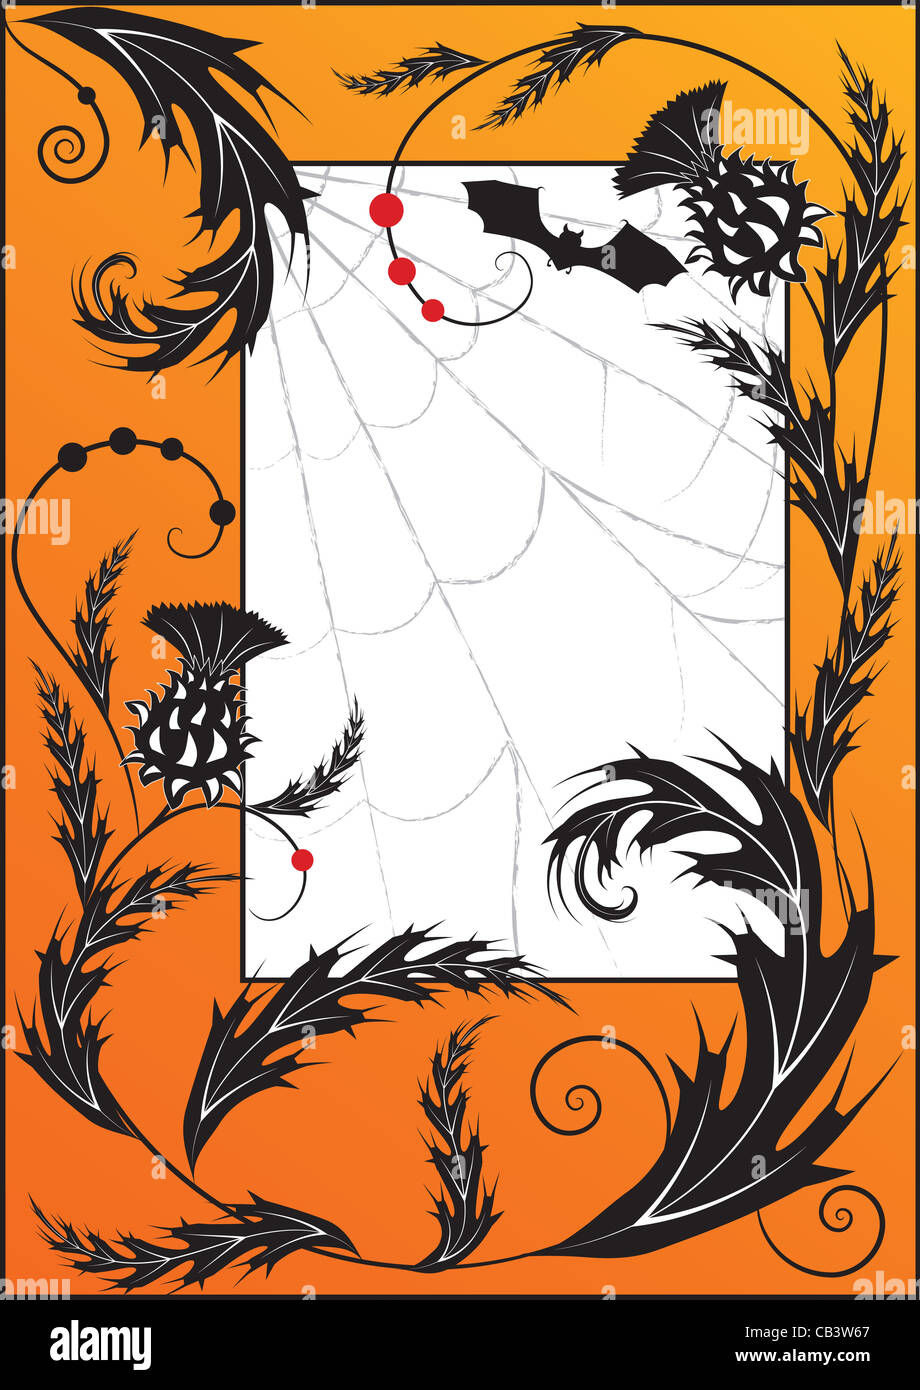 Halloween illustration with thistle, spiderweb and bat - Stock Image